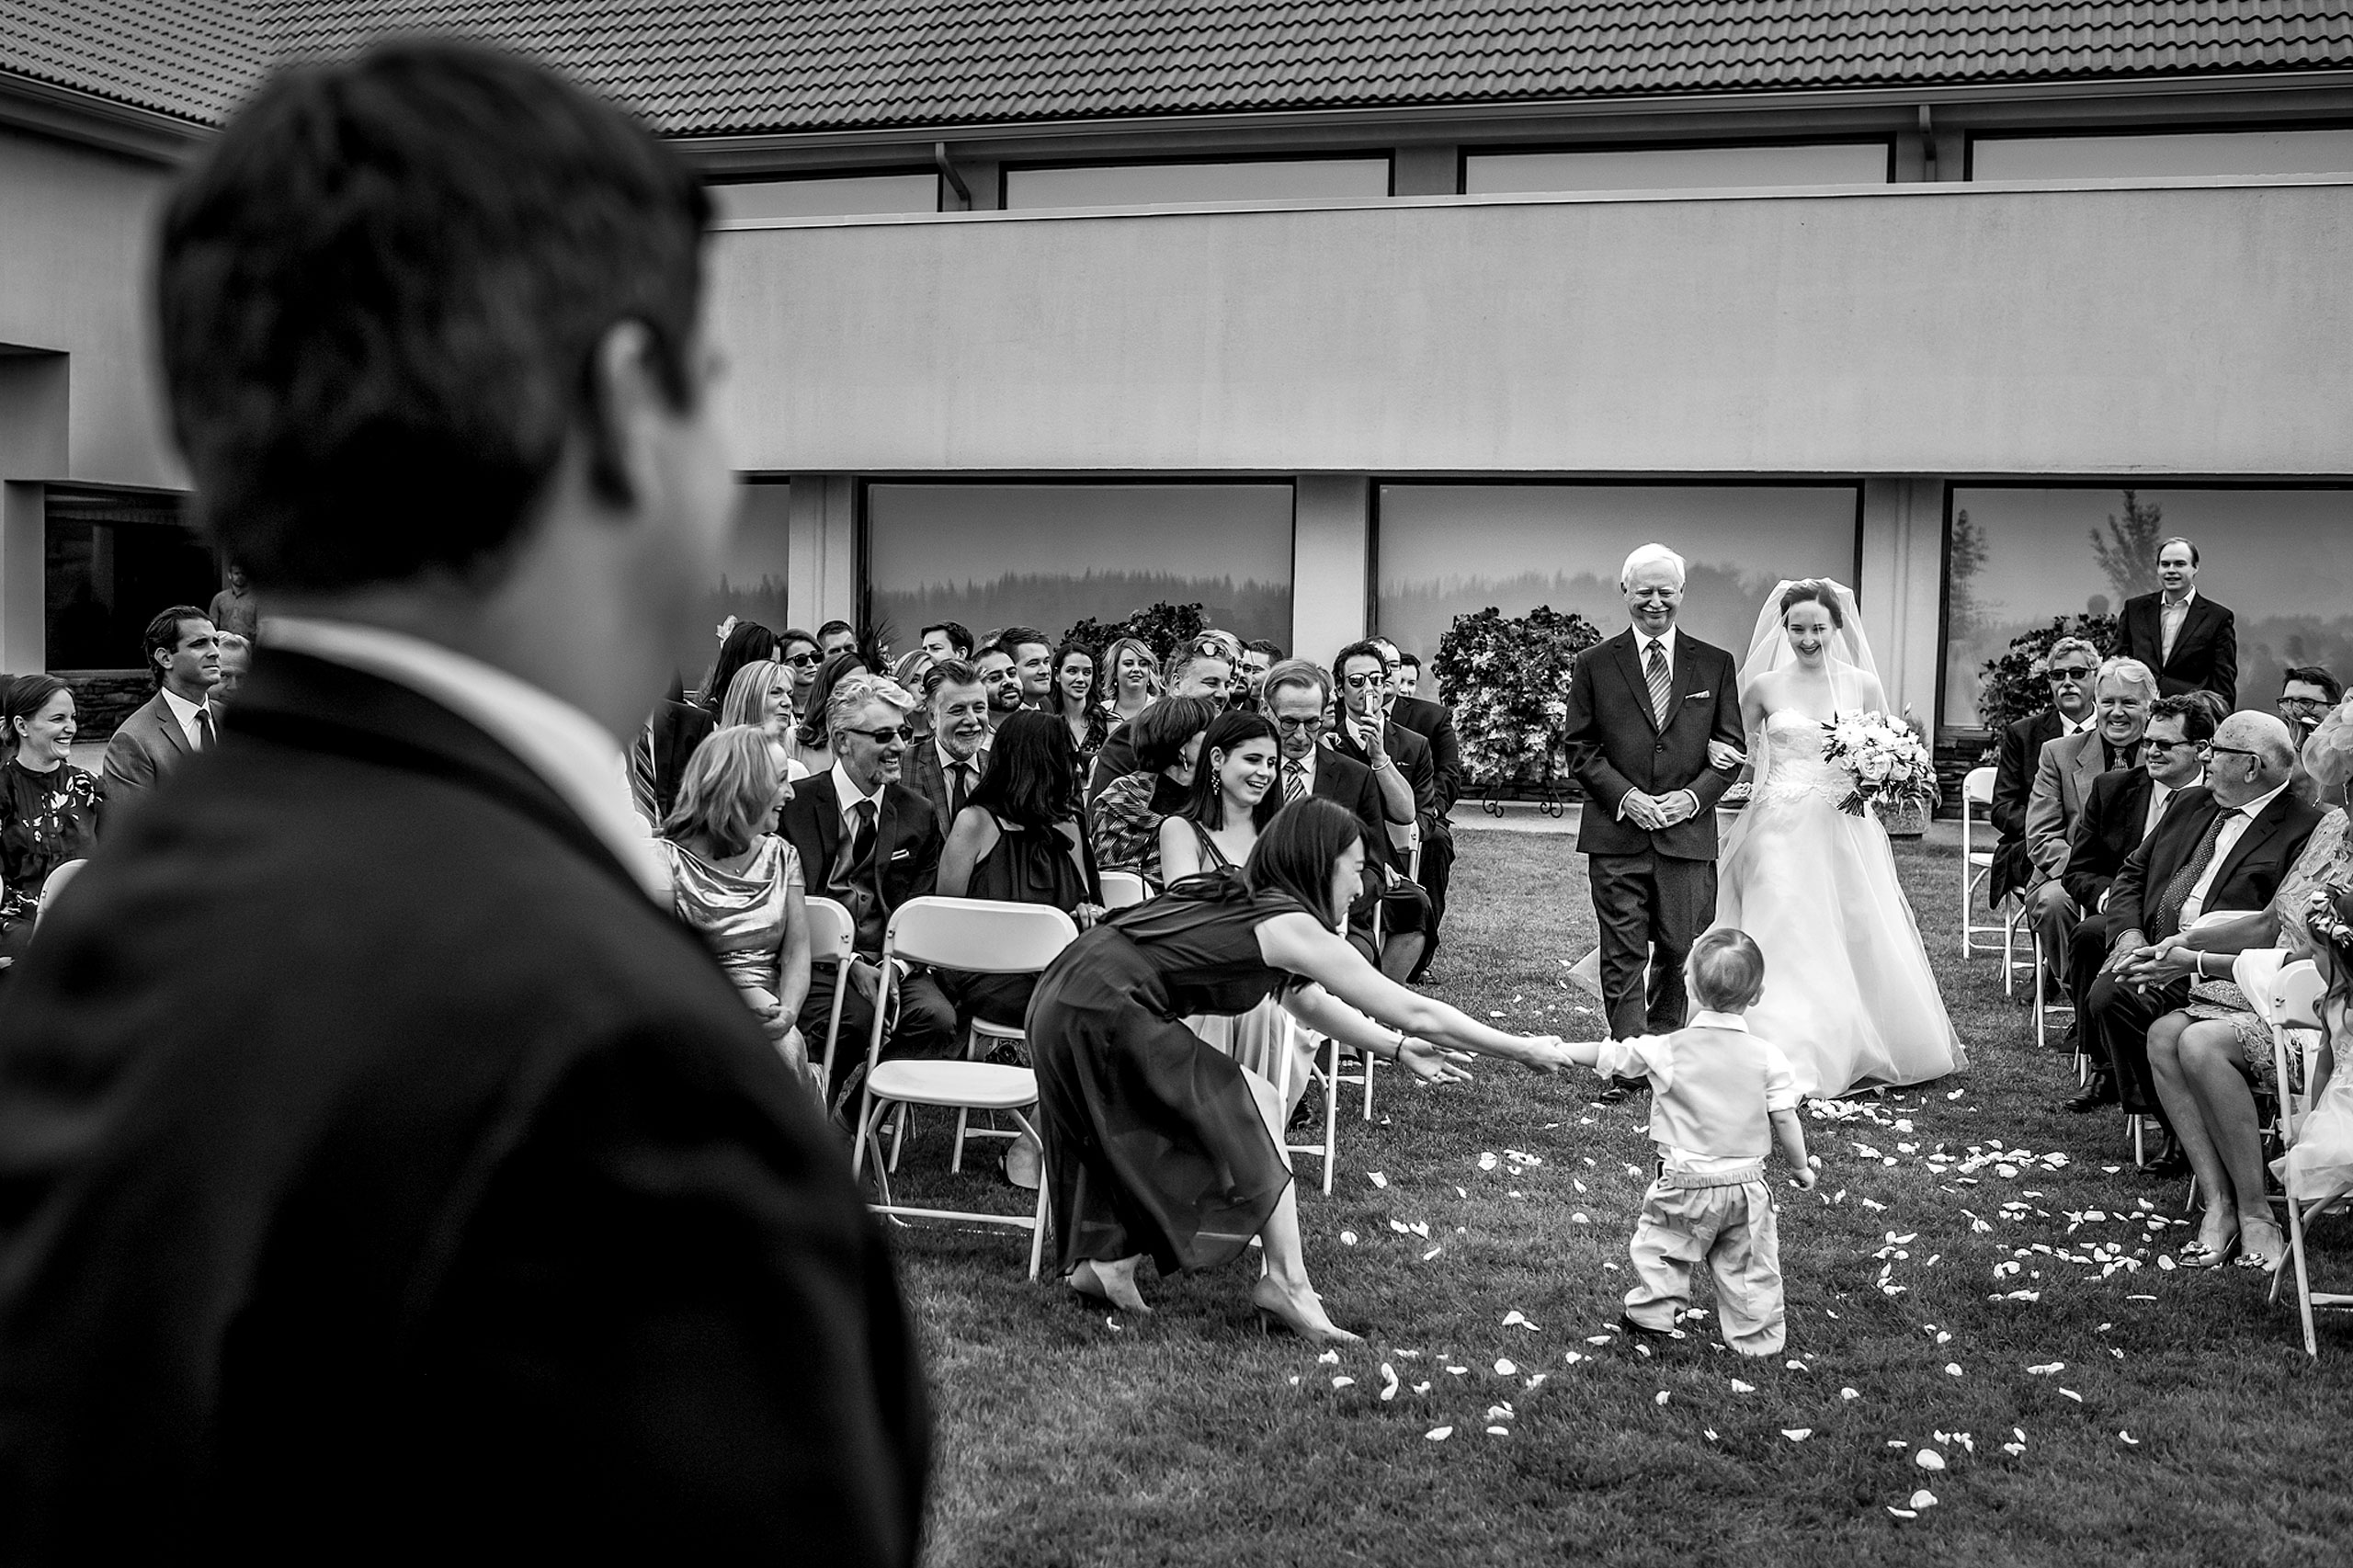 a bride and her dad walking down the aisle at a wedding ceremony and a little boy stopped in the aisle by award winning photographer sean leblanc